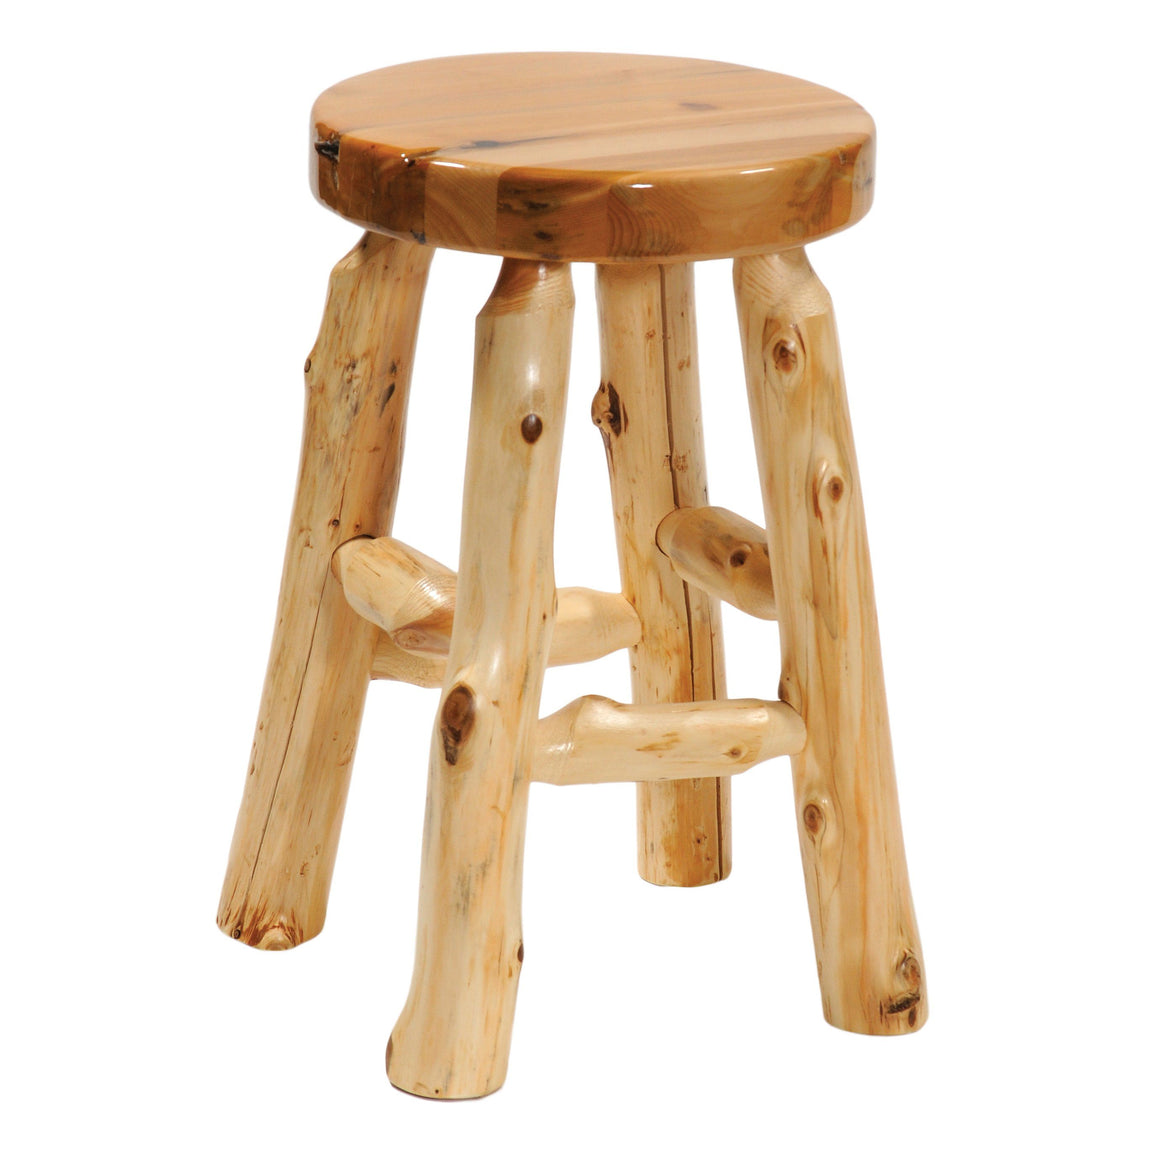 "Natural Cedar Log Round Counter Stool - 24"" high - Liquid Glass Finish - Rustic Deco Incorporated"